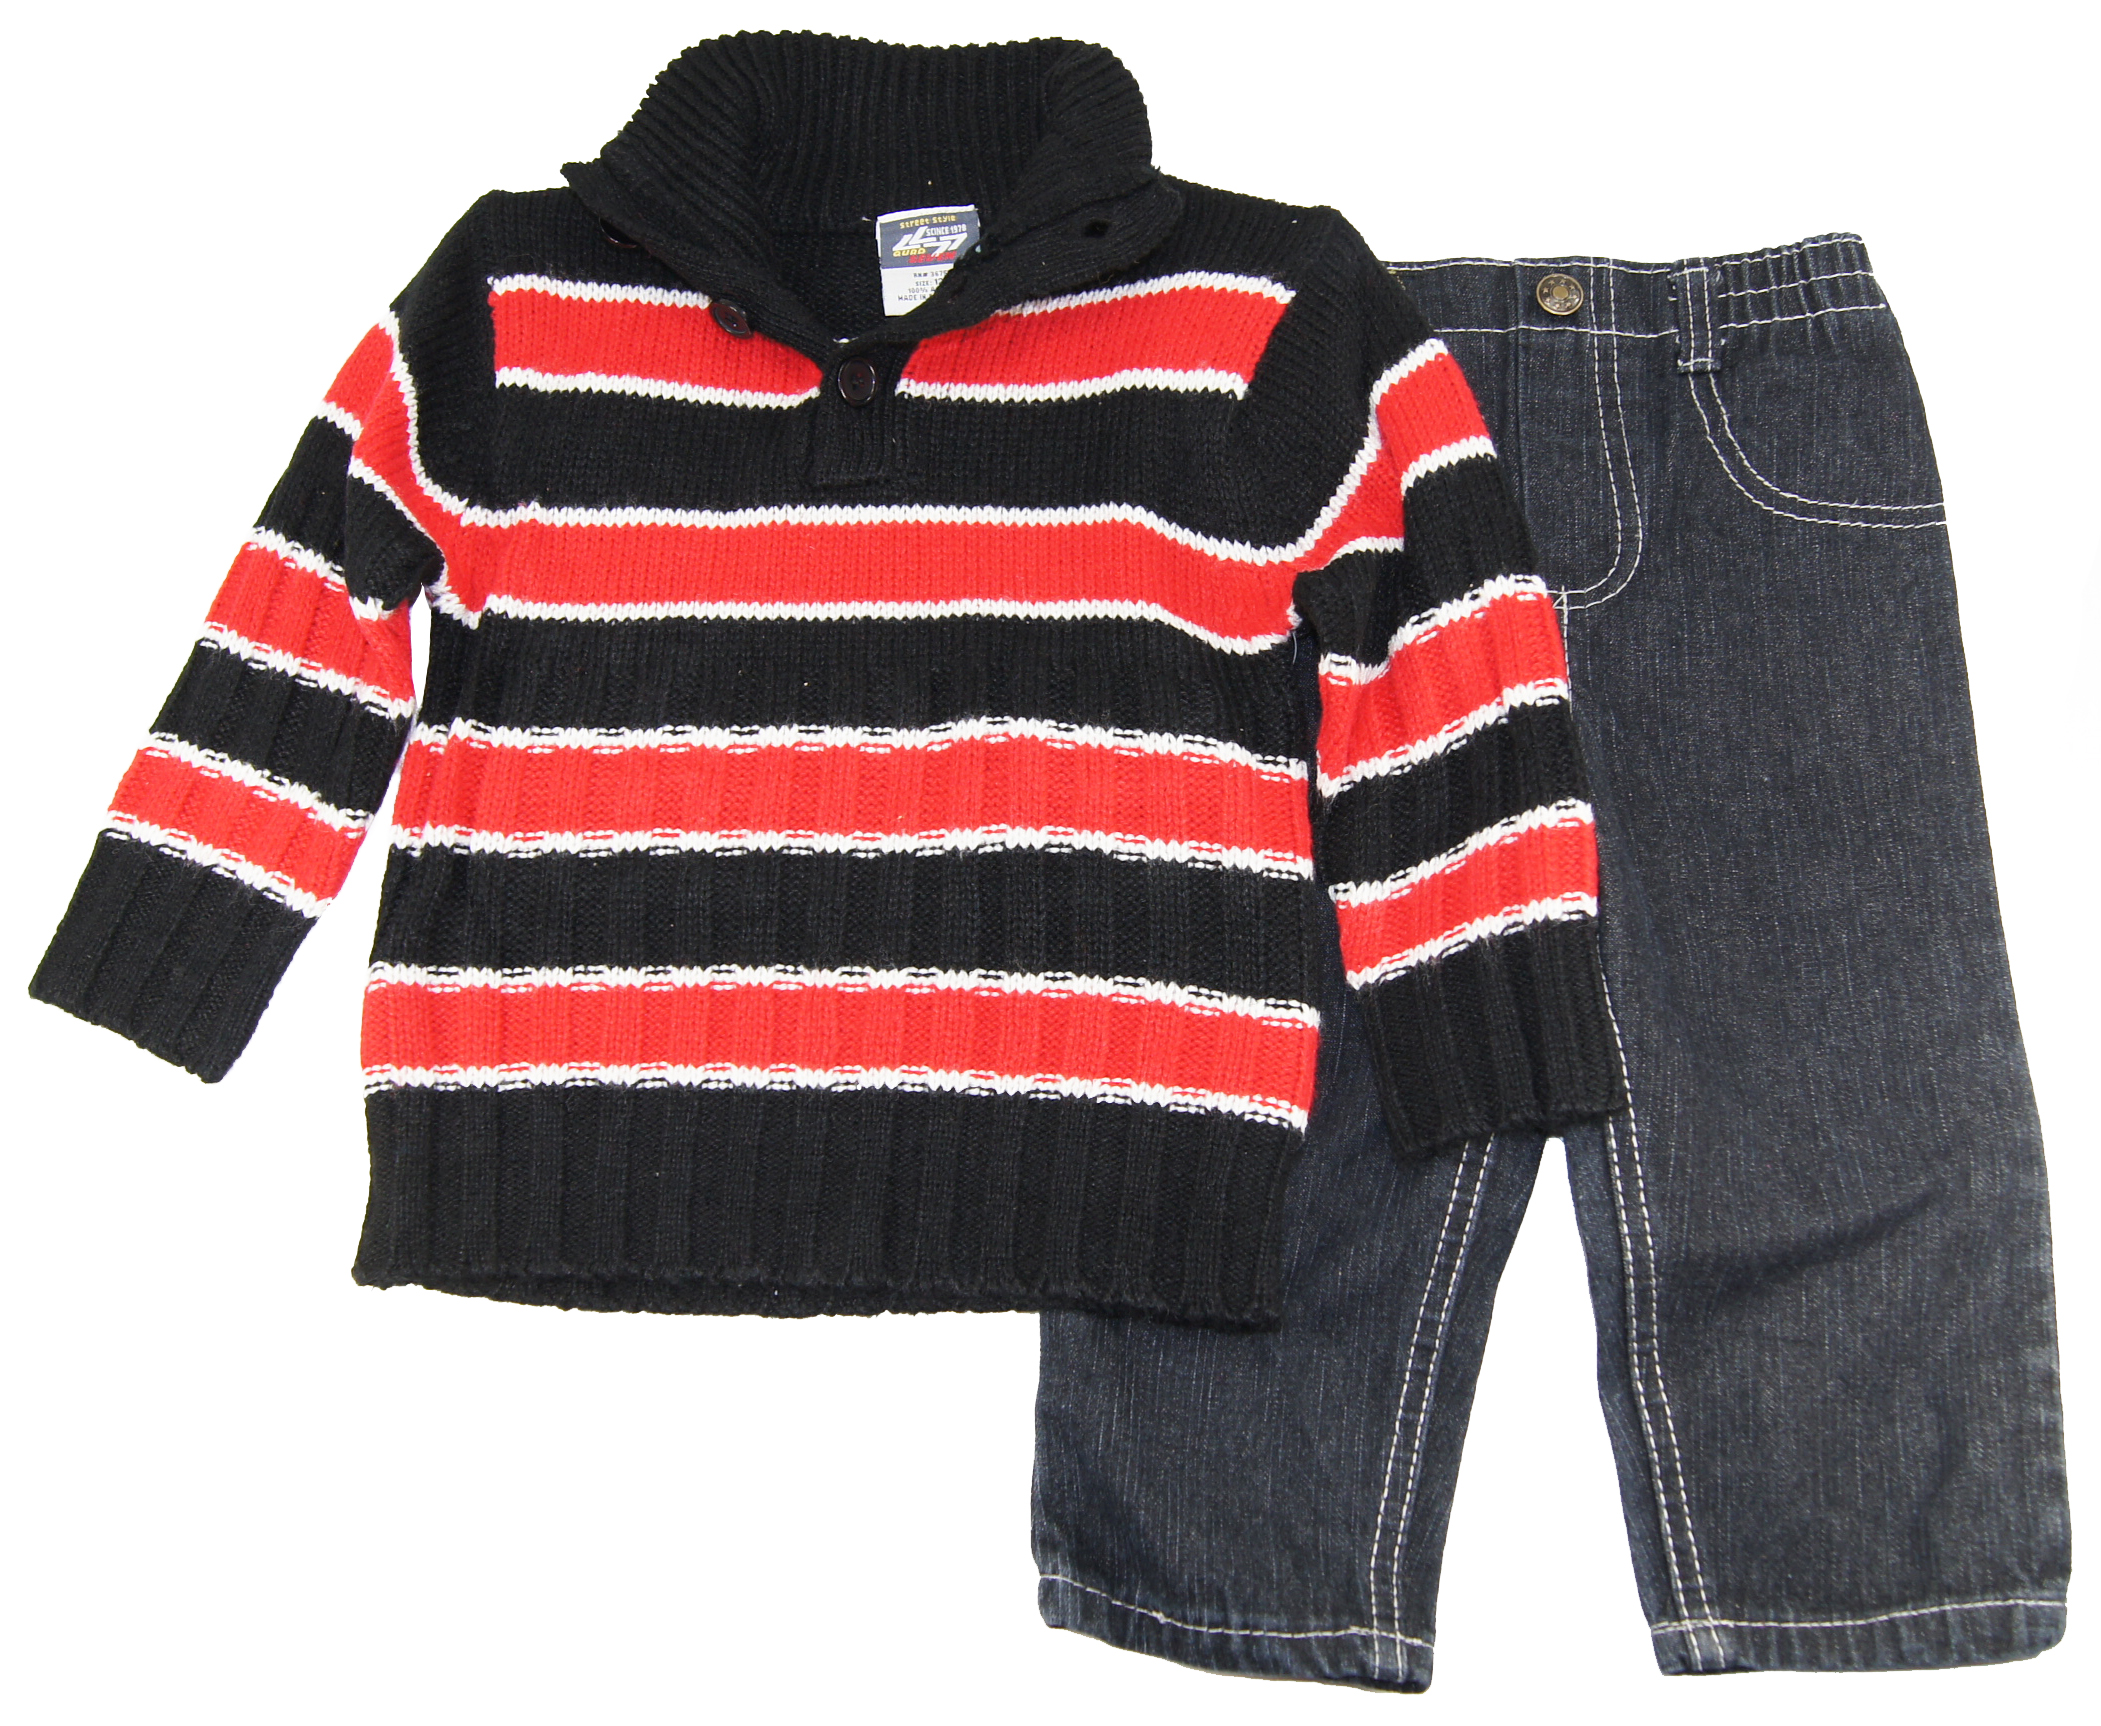 Quad Seven Infant Boys 12-24 Red Striped Button Up Cardigan Sewater Denim Set at Sears.com